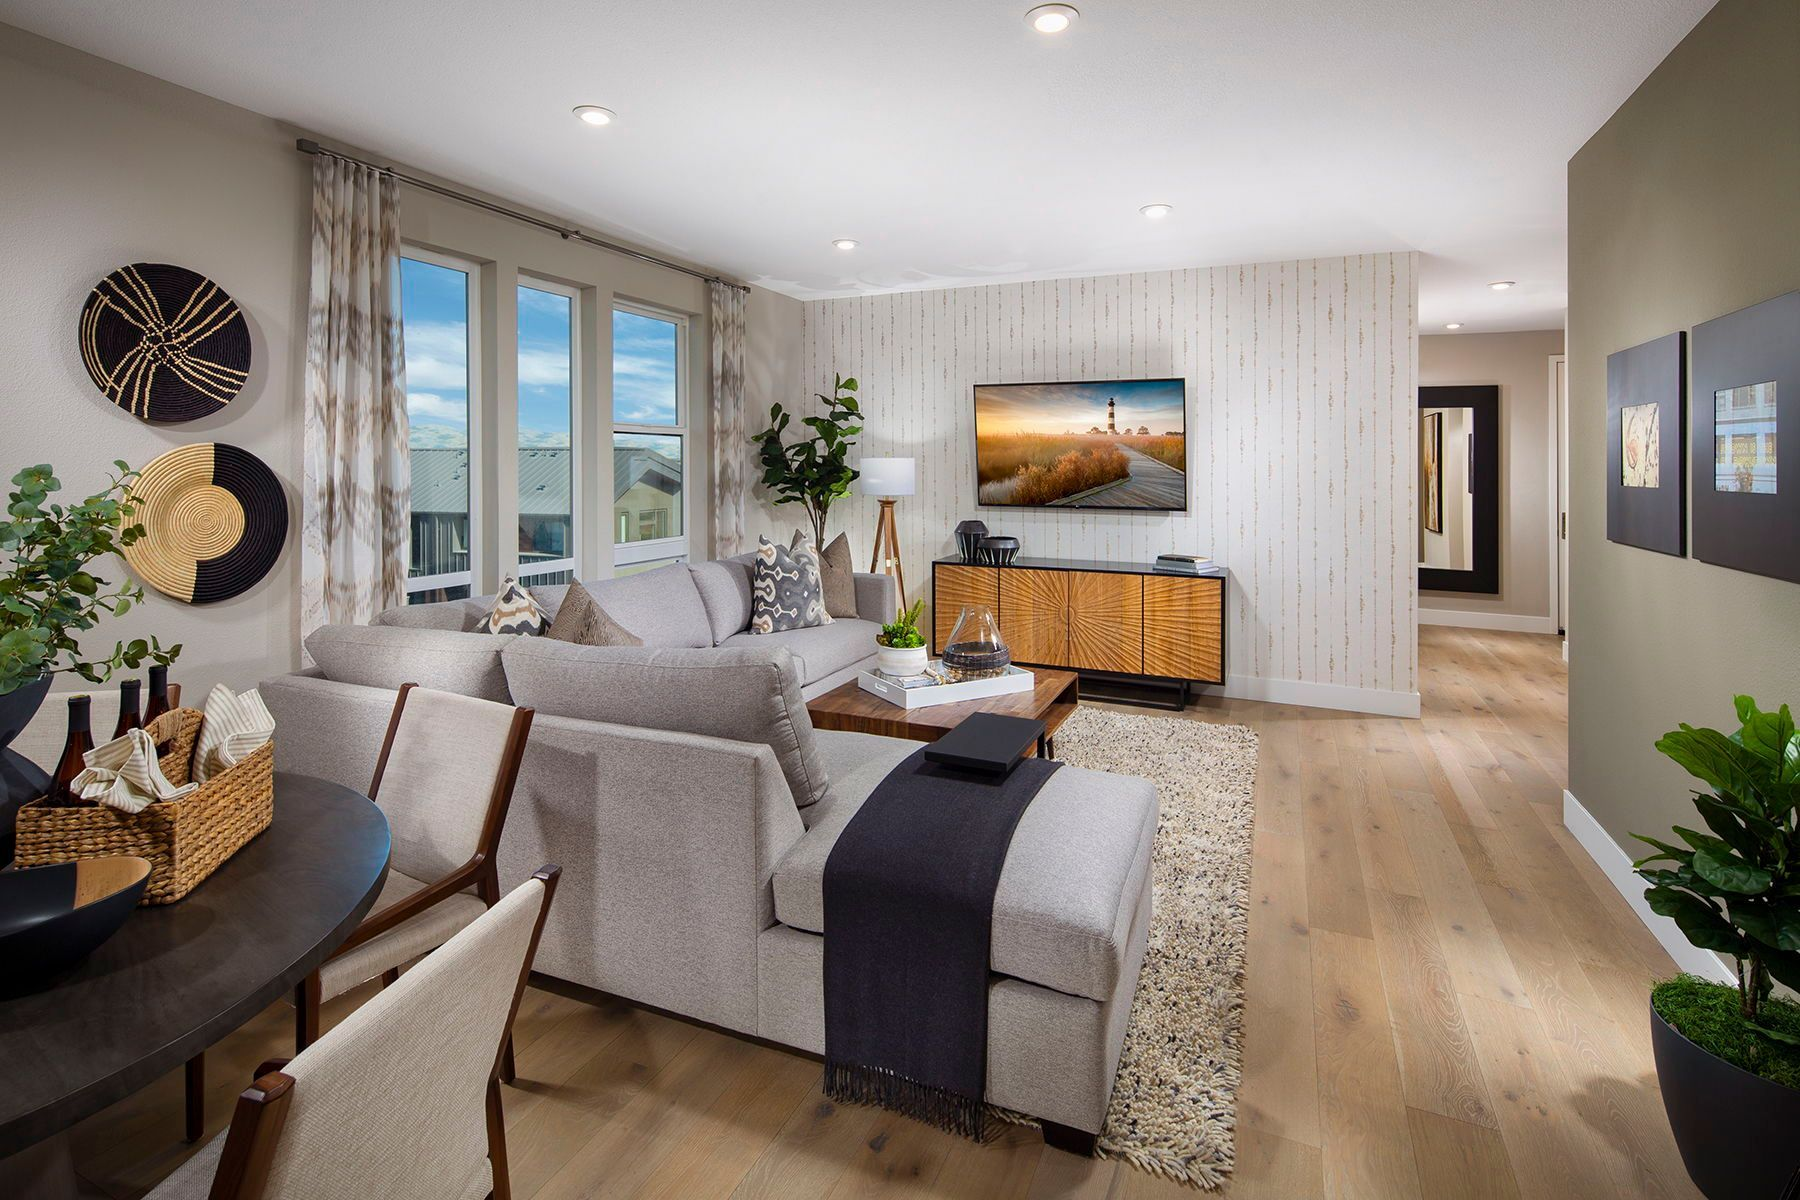 Single Level Condos For Sale In Fremont Ca Cozy Living Rooms Home Condos For Sale